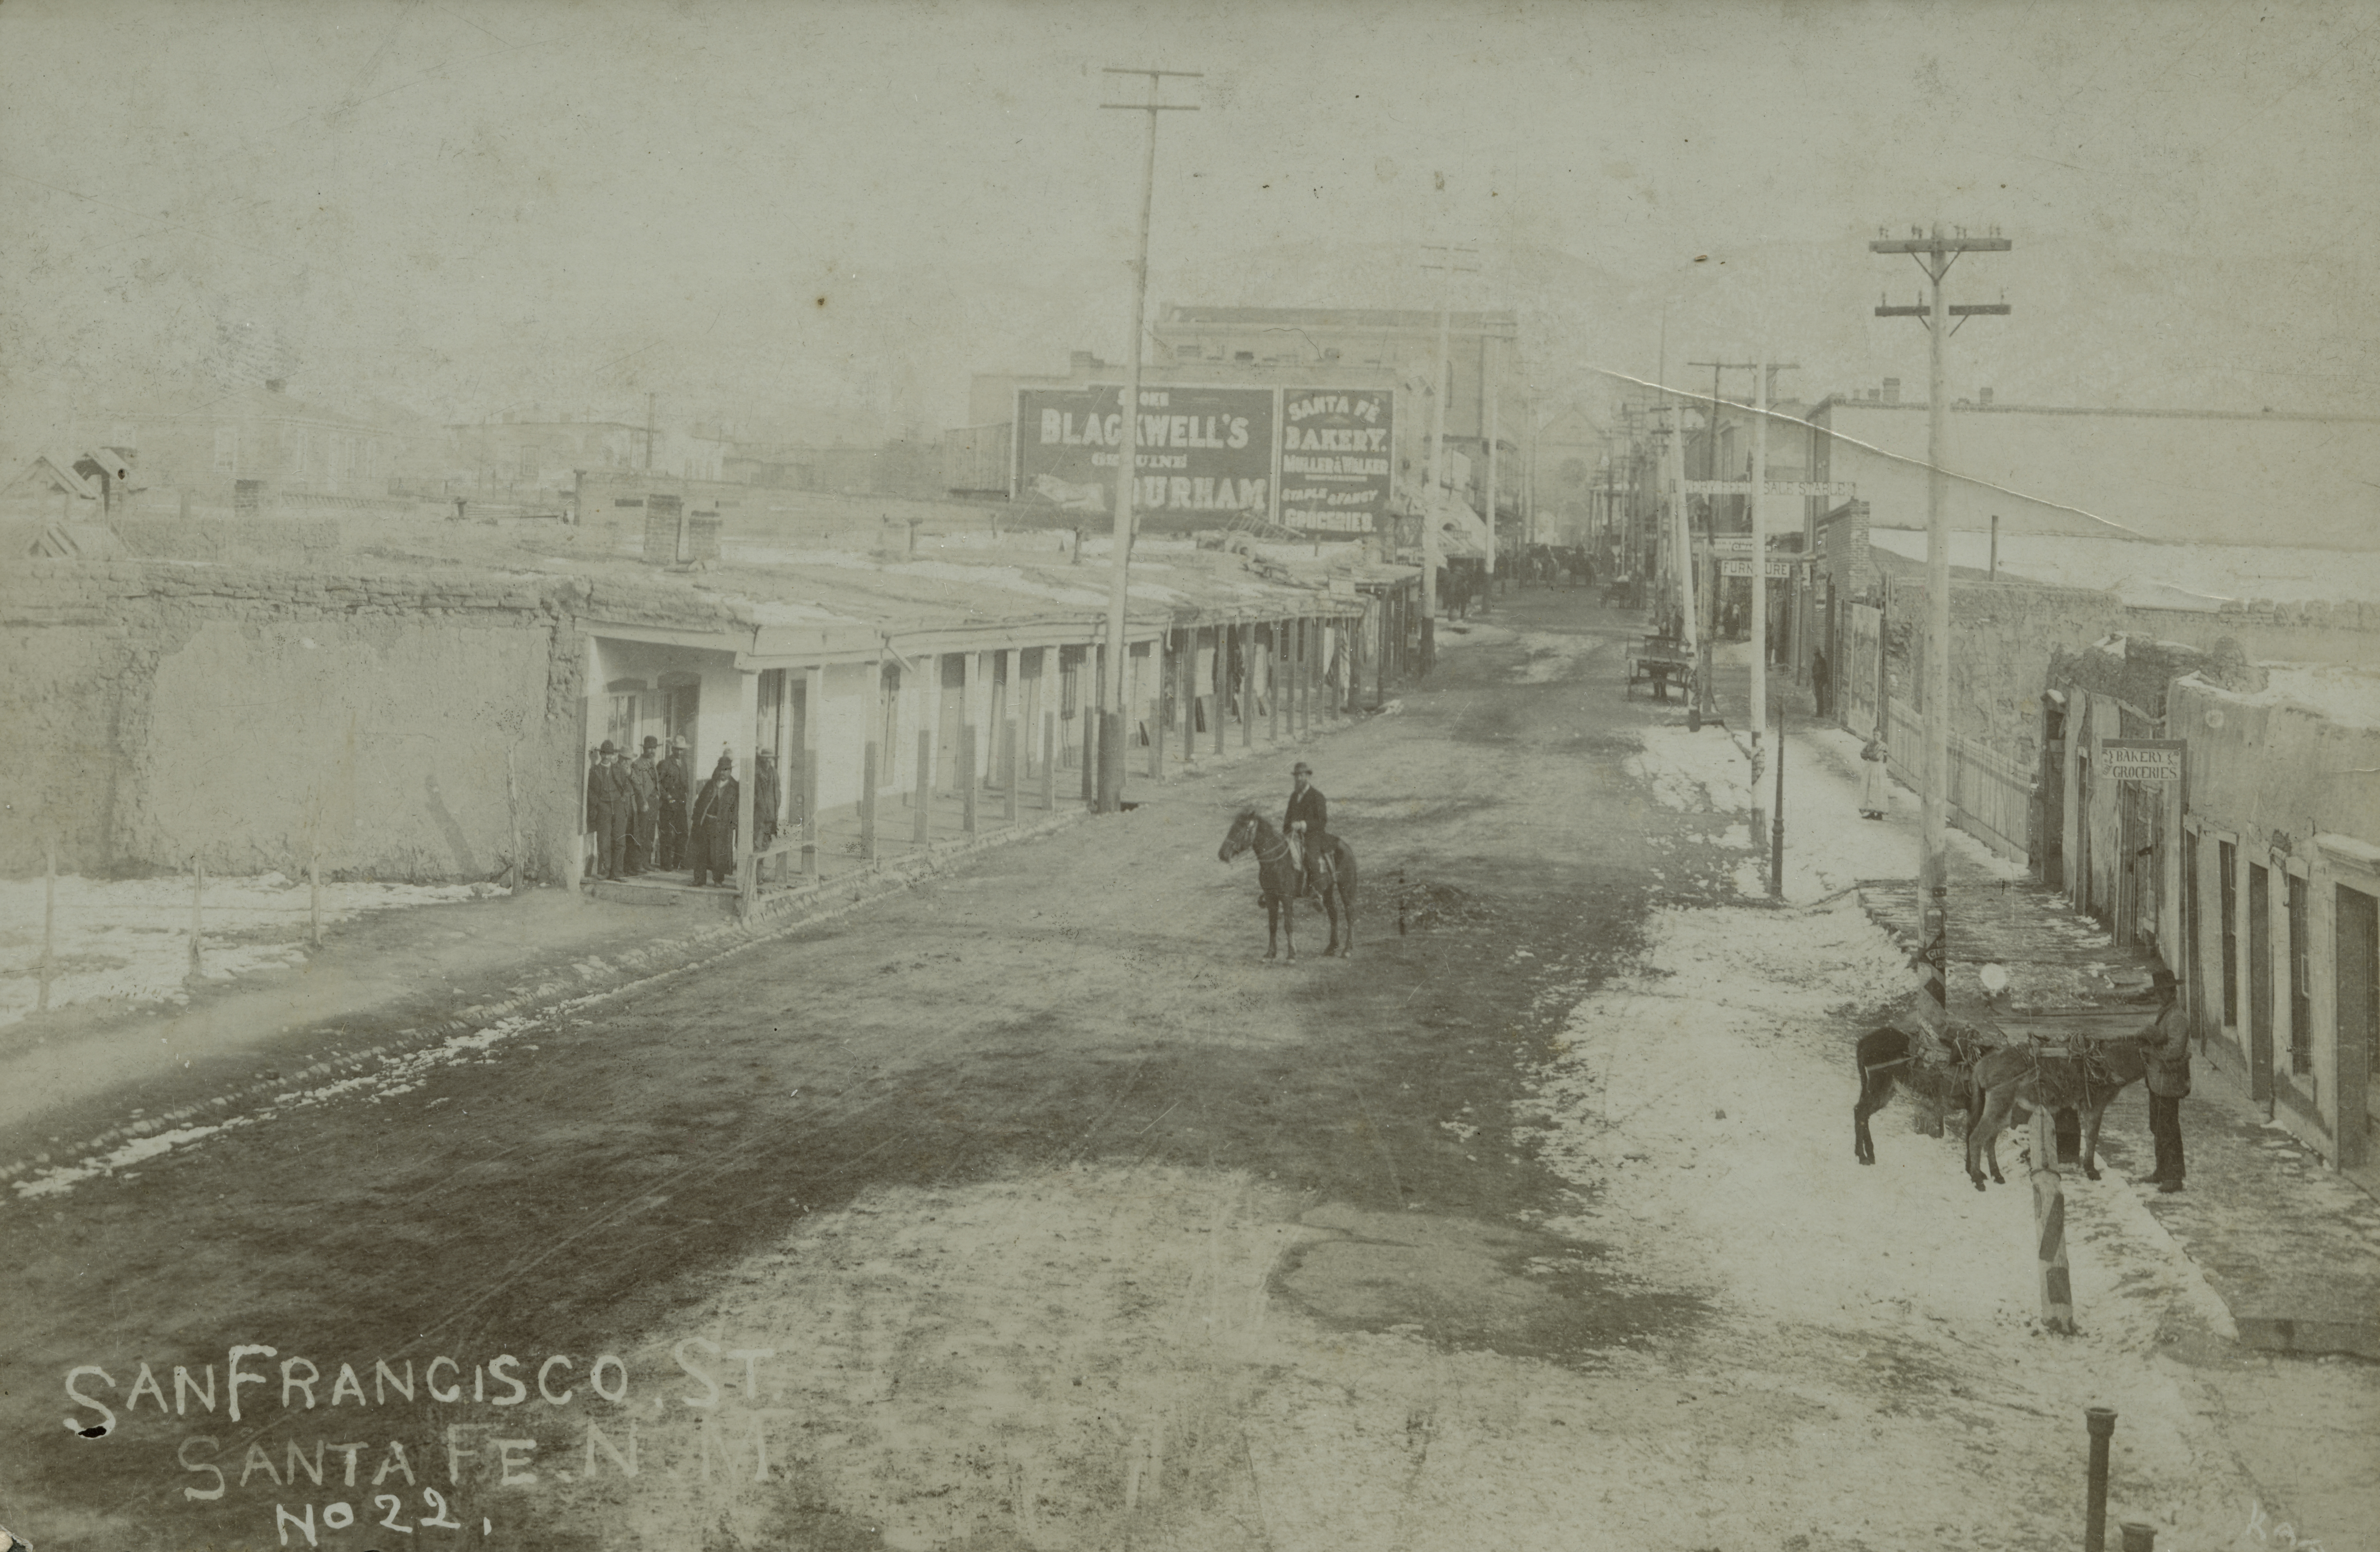 Lower San Francisco Street Looking East by Christian Kaadt Santa Fe c. 1889-1905 Courtesy Palace of the Governors Photo Archives